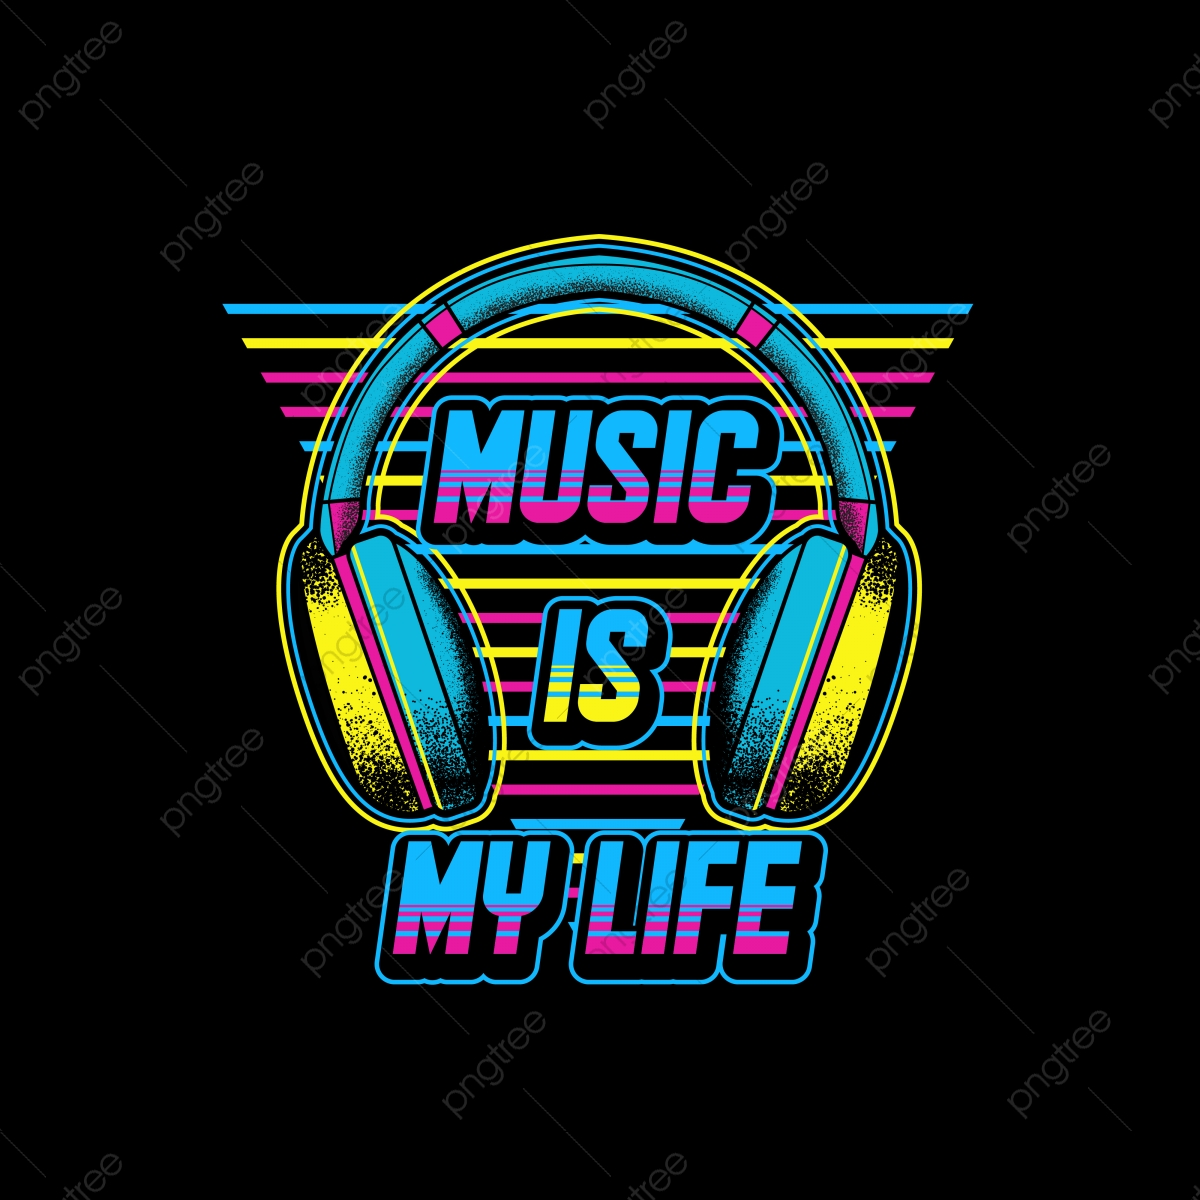 Music Is My Life T Shirt Design Apparel Art Artwork Png And Vector With Transparent Background For Free Download